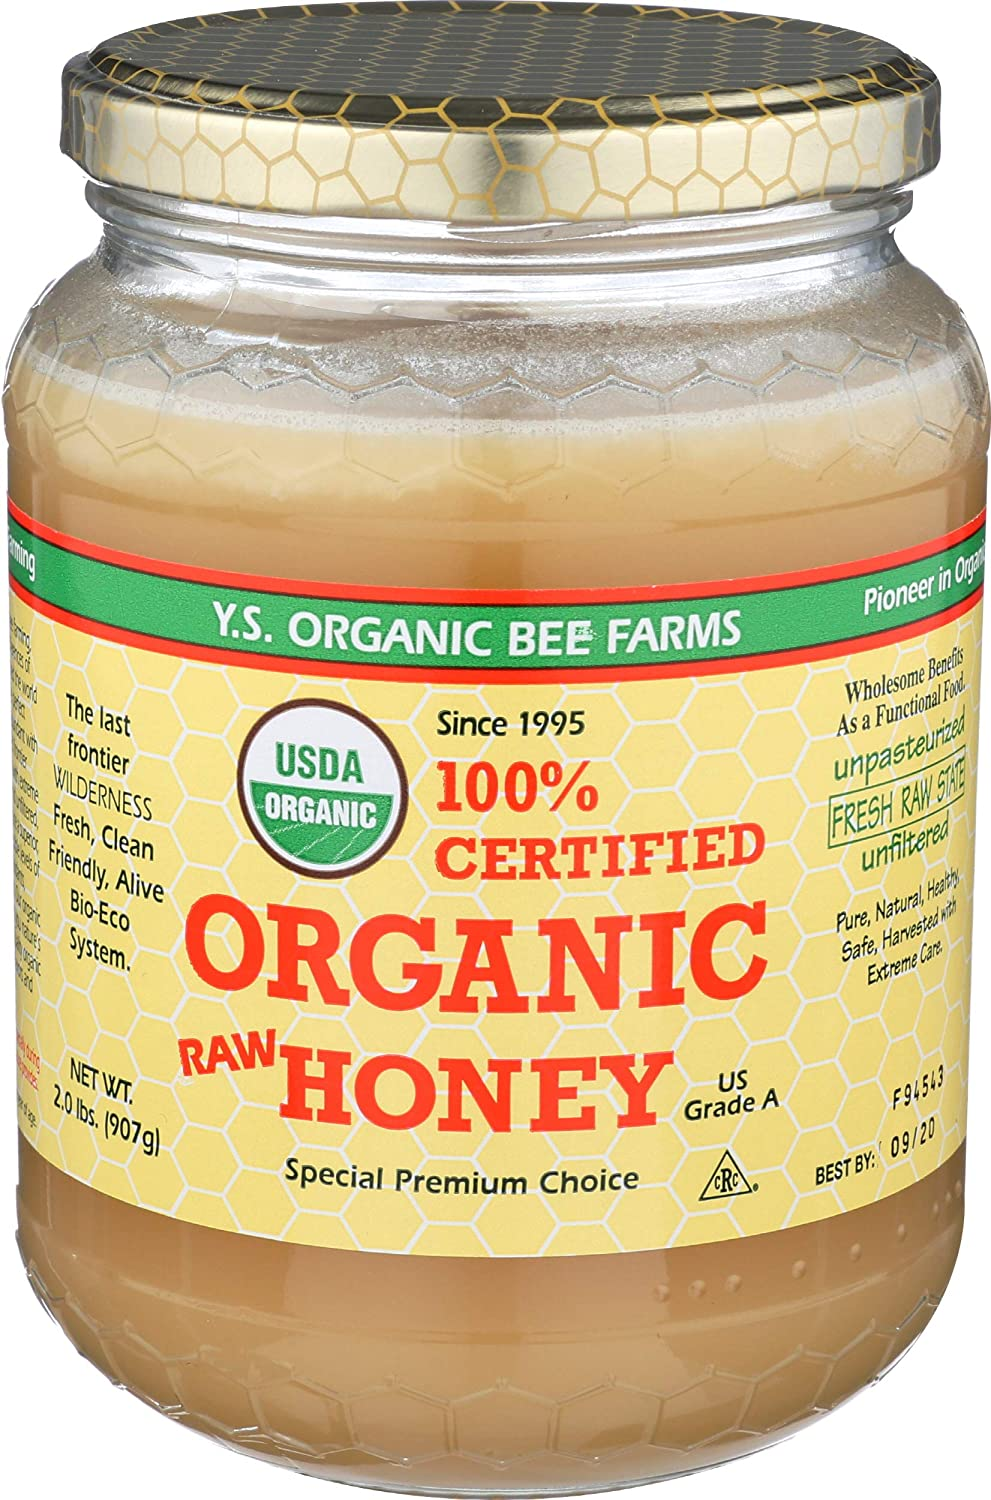 What is the best raw honey to buy? Where to buy raw organic honey?